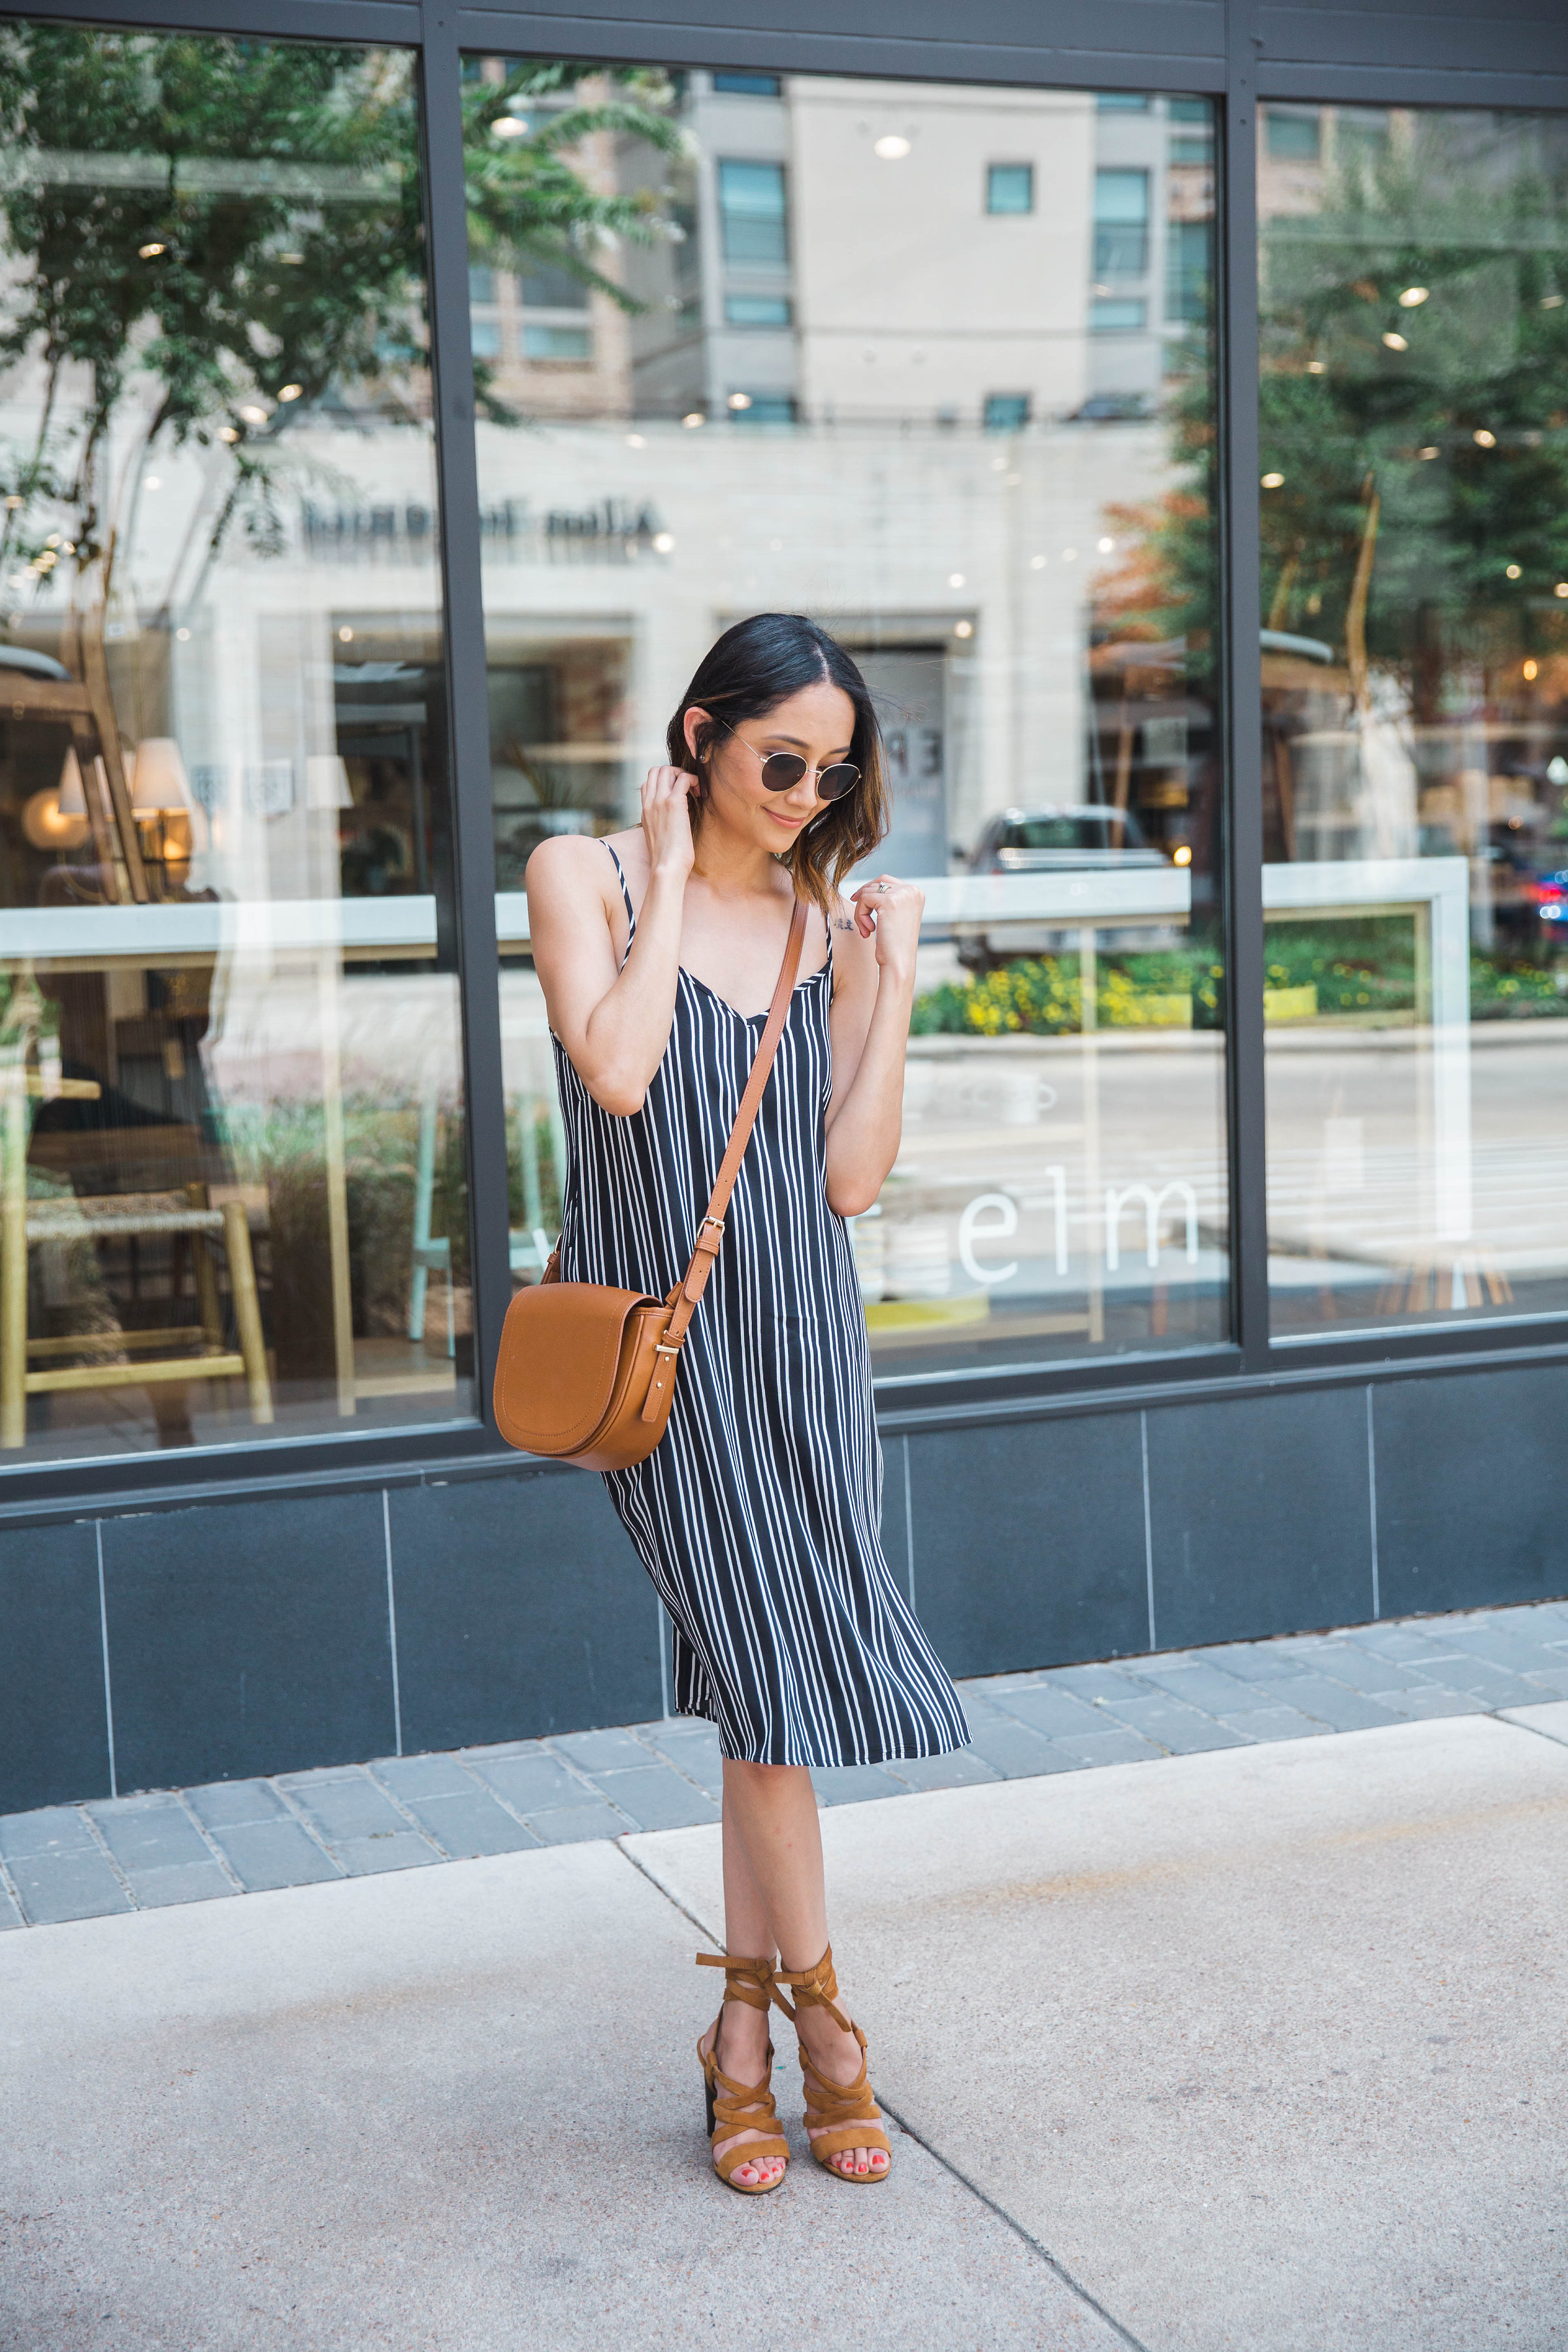 Style blogger Lilly Beltran of Daily Craving in a casual summer outfit with a slip dress and lace-up sandals